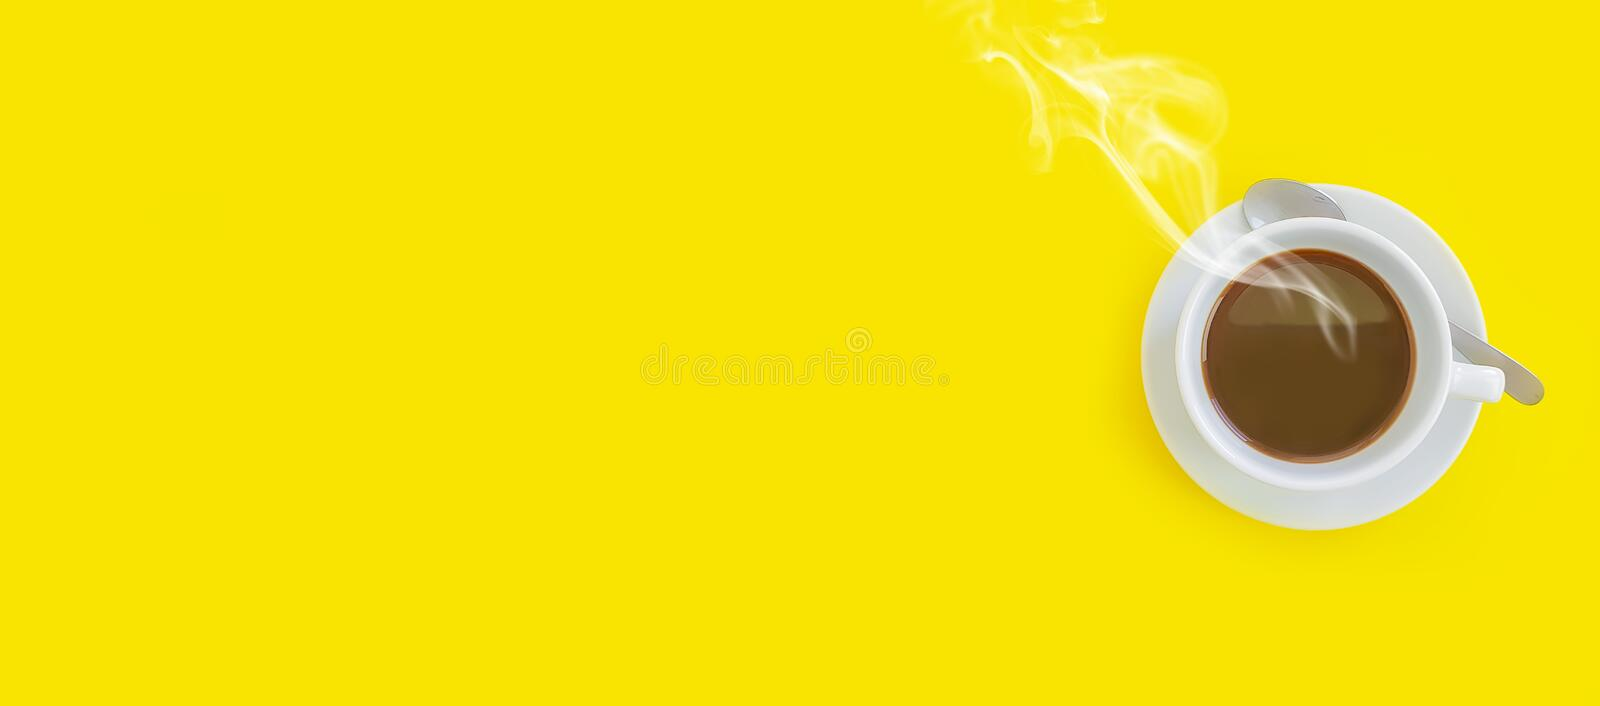 Cup of coffee on a colored background, smoke creative pattern table royalty free stock images